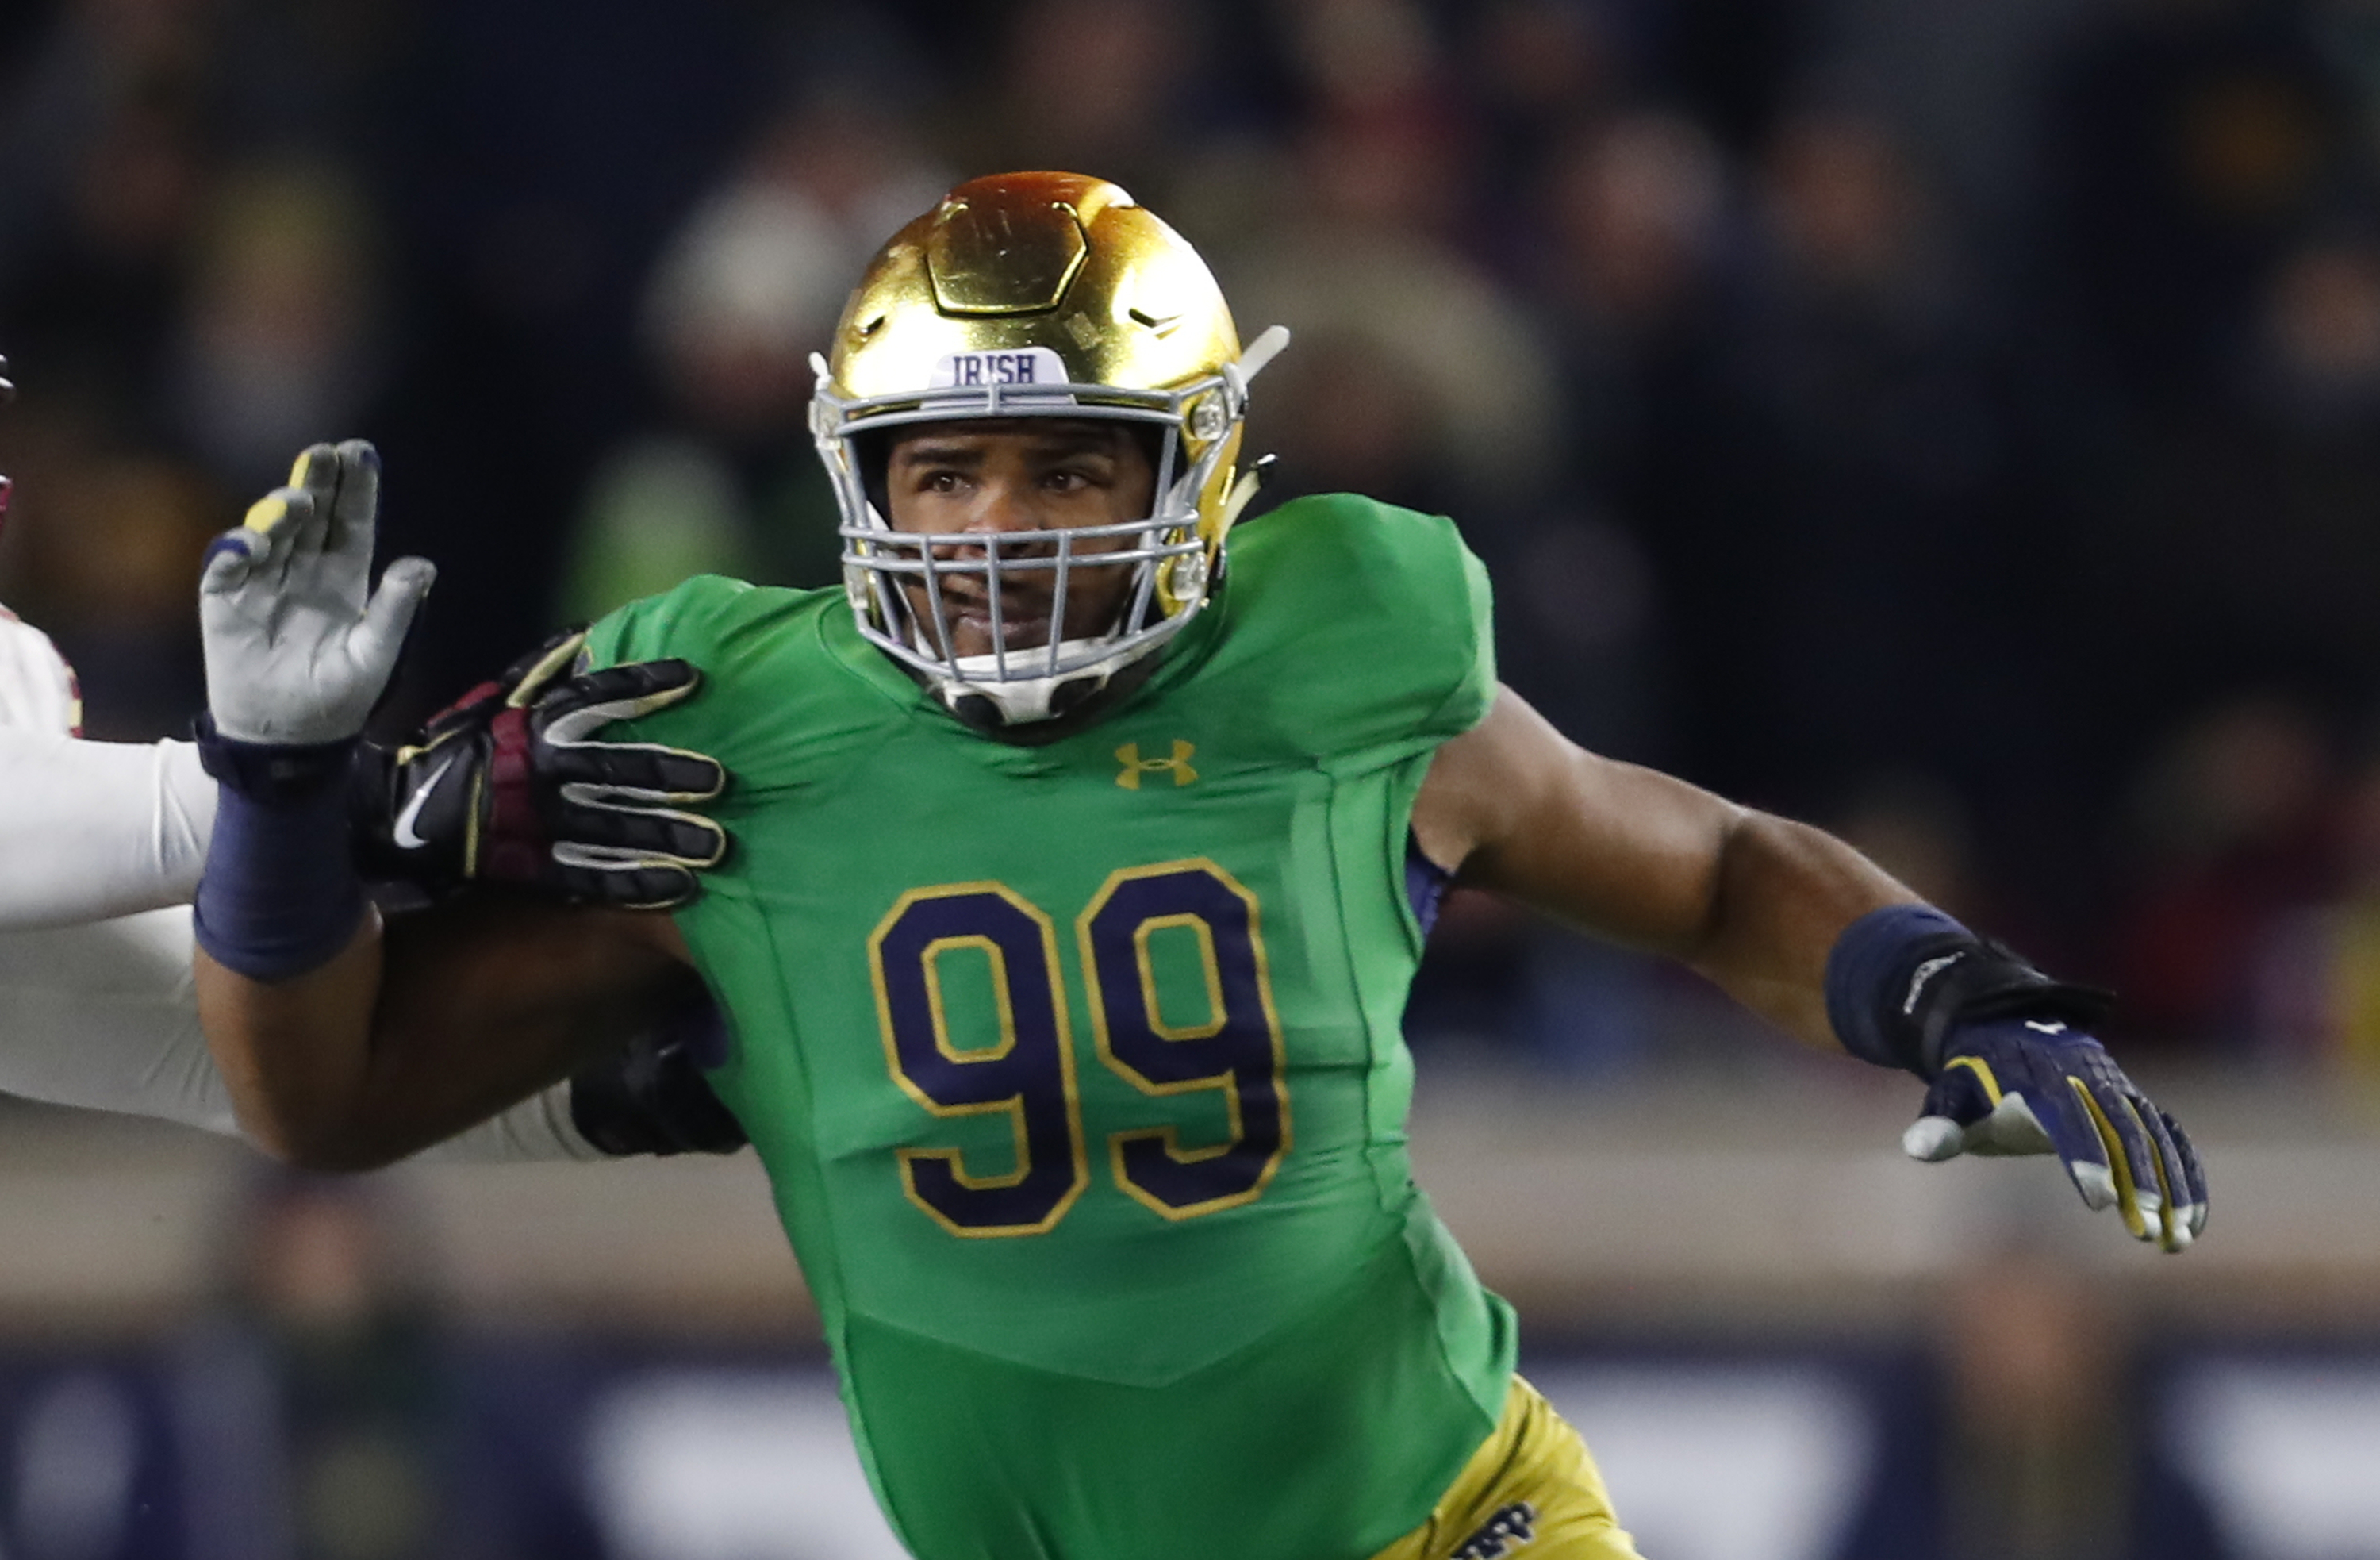 Notre Dame football announces green uniforms for USC game